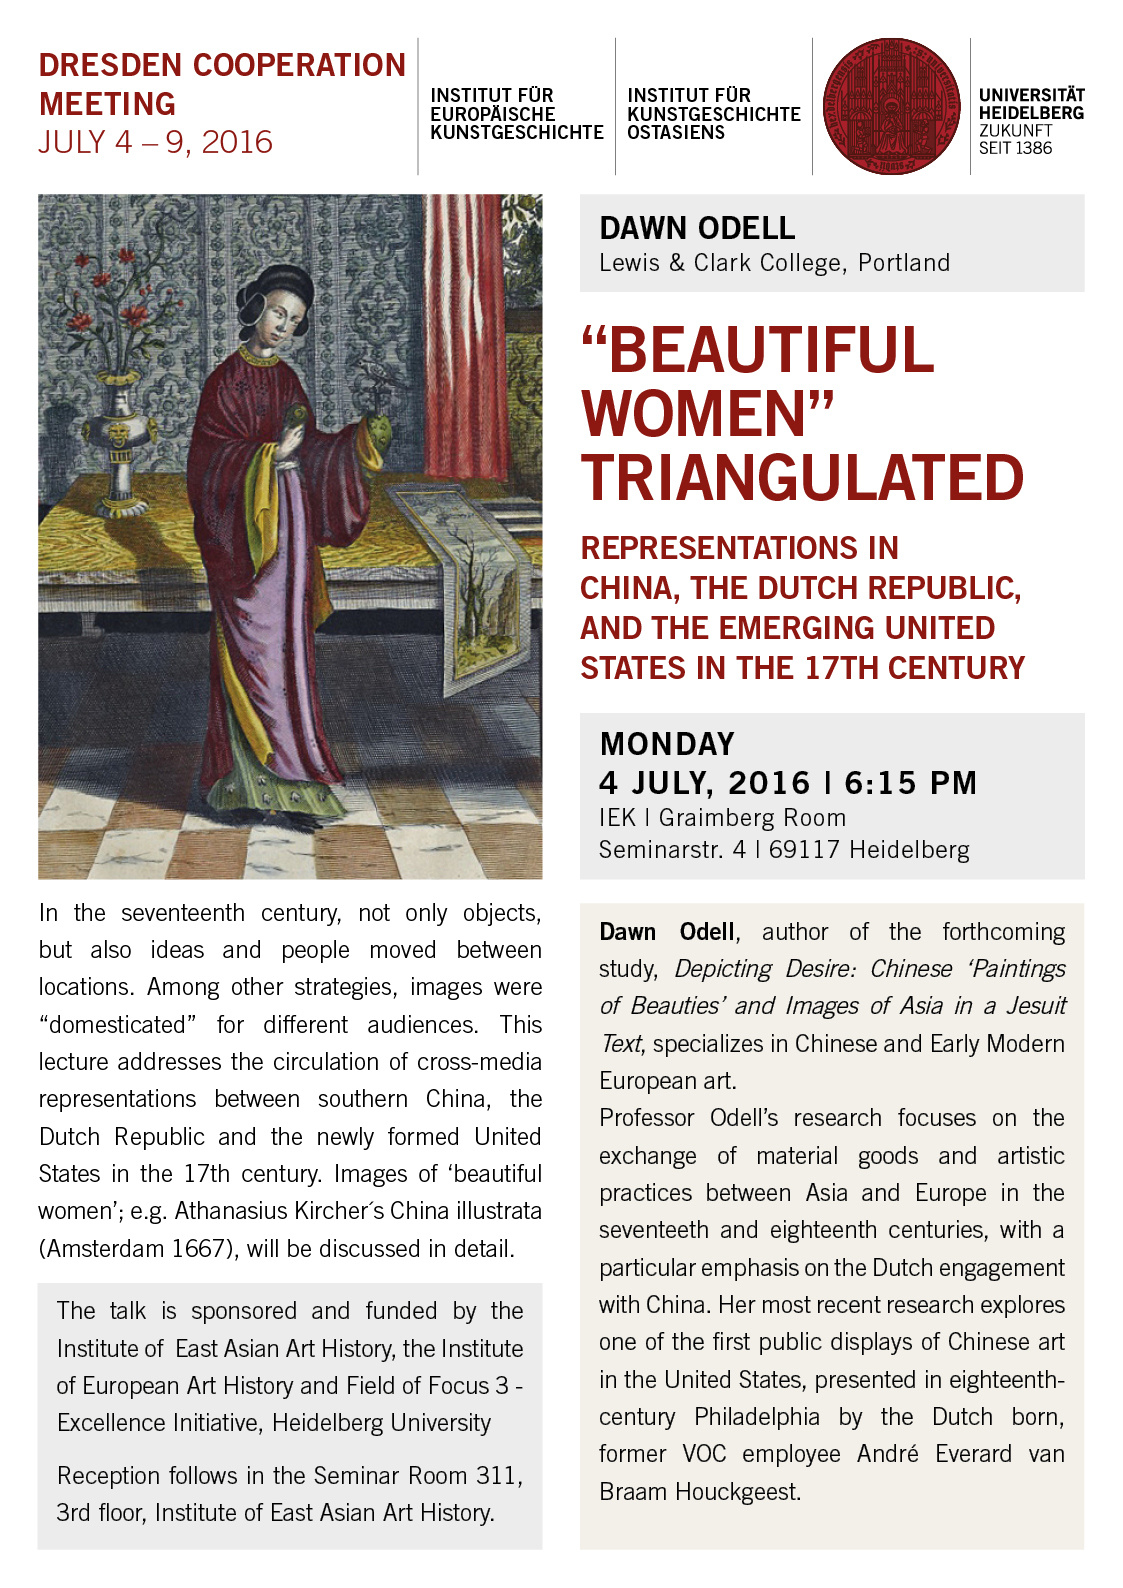 4. Juli 2016 | Dawn Odell: 'Beautiful Women' triangulated. Representations in China, the Dutch Republic, and the emerging United States in the 17th Century